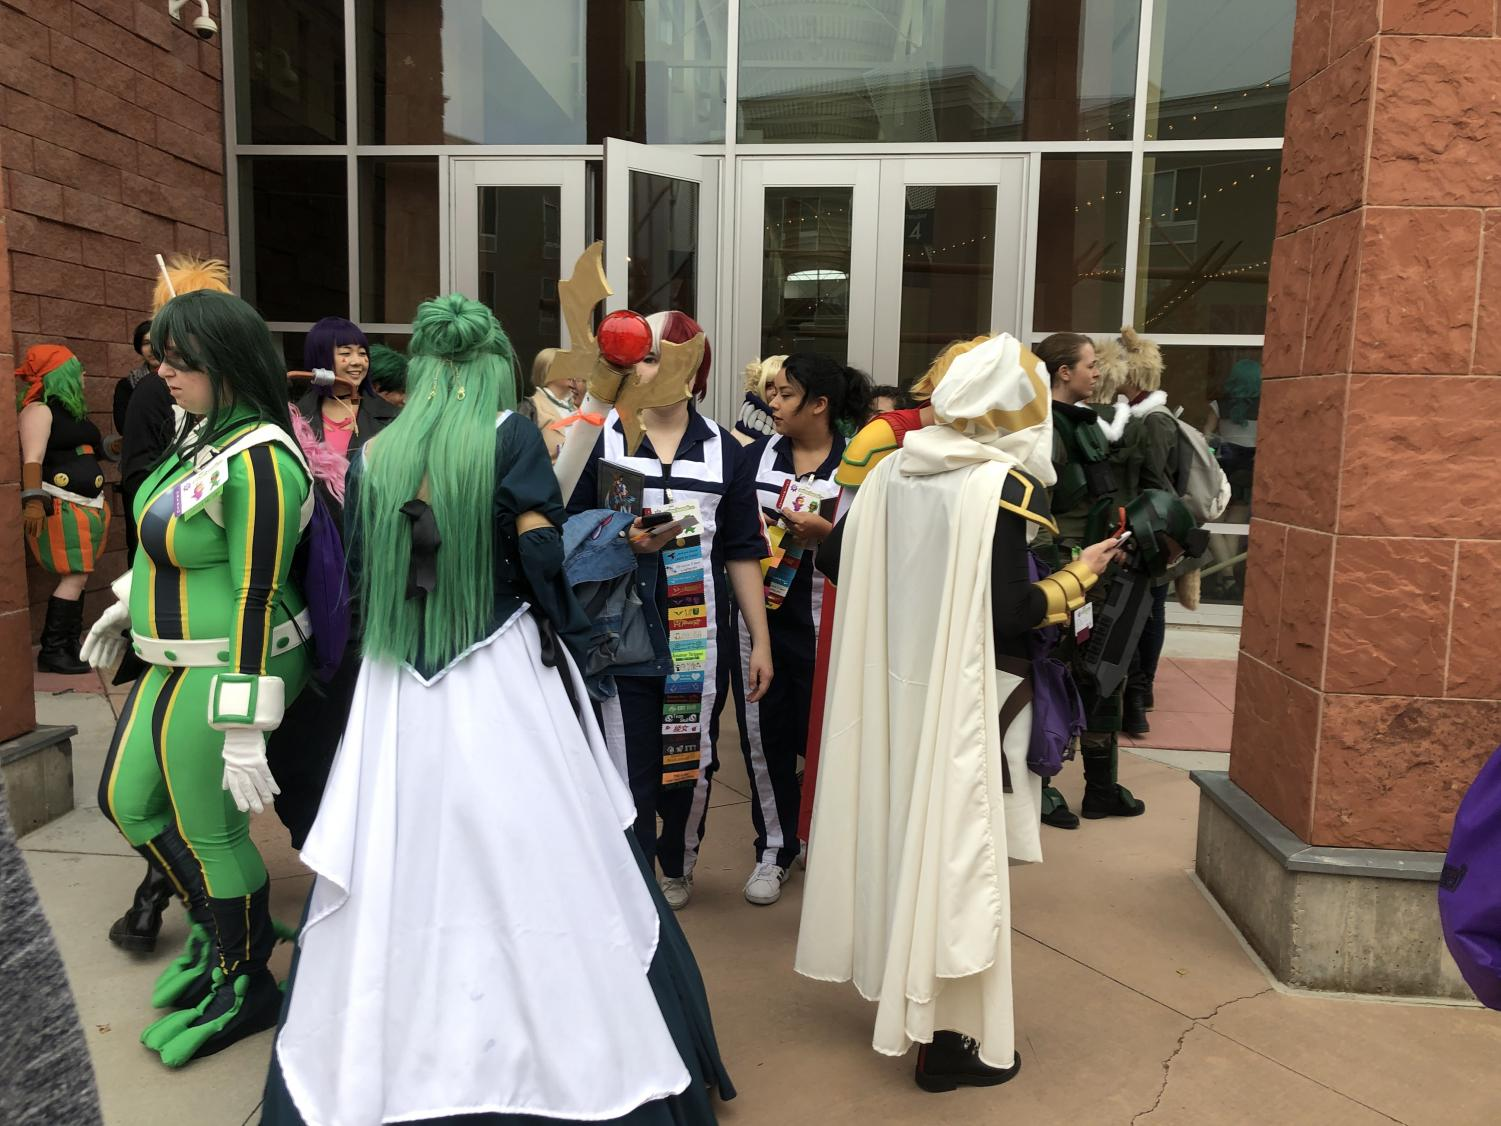 """My Hero Academia"" meetup was a popular turnout at Anime Banzai."